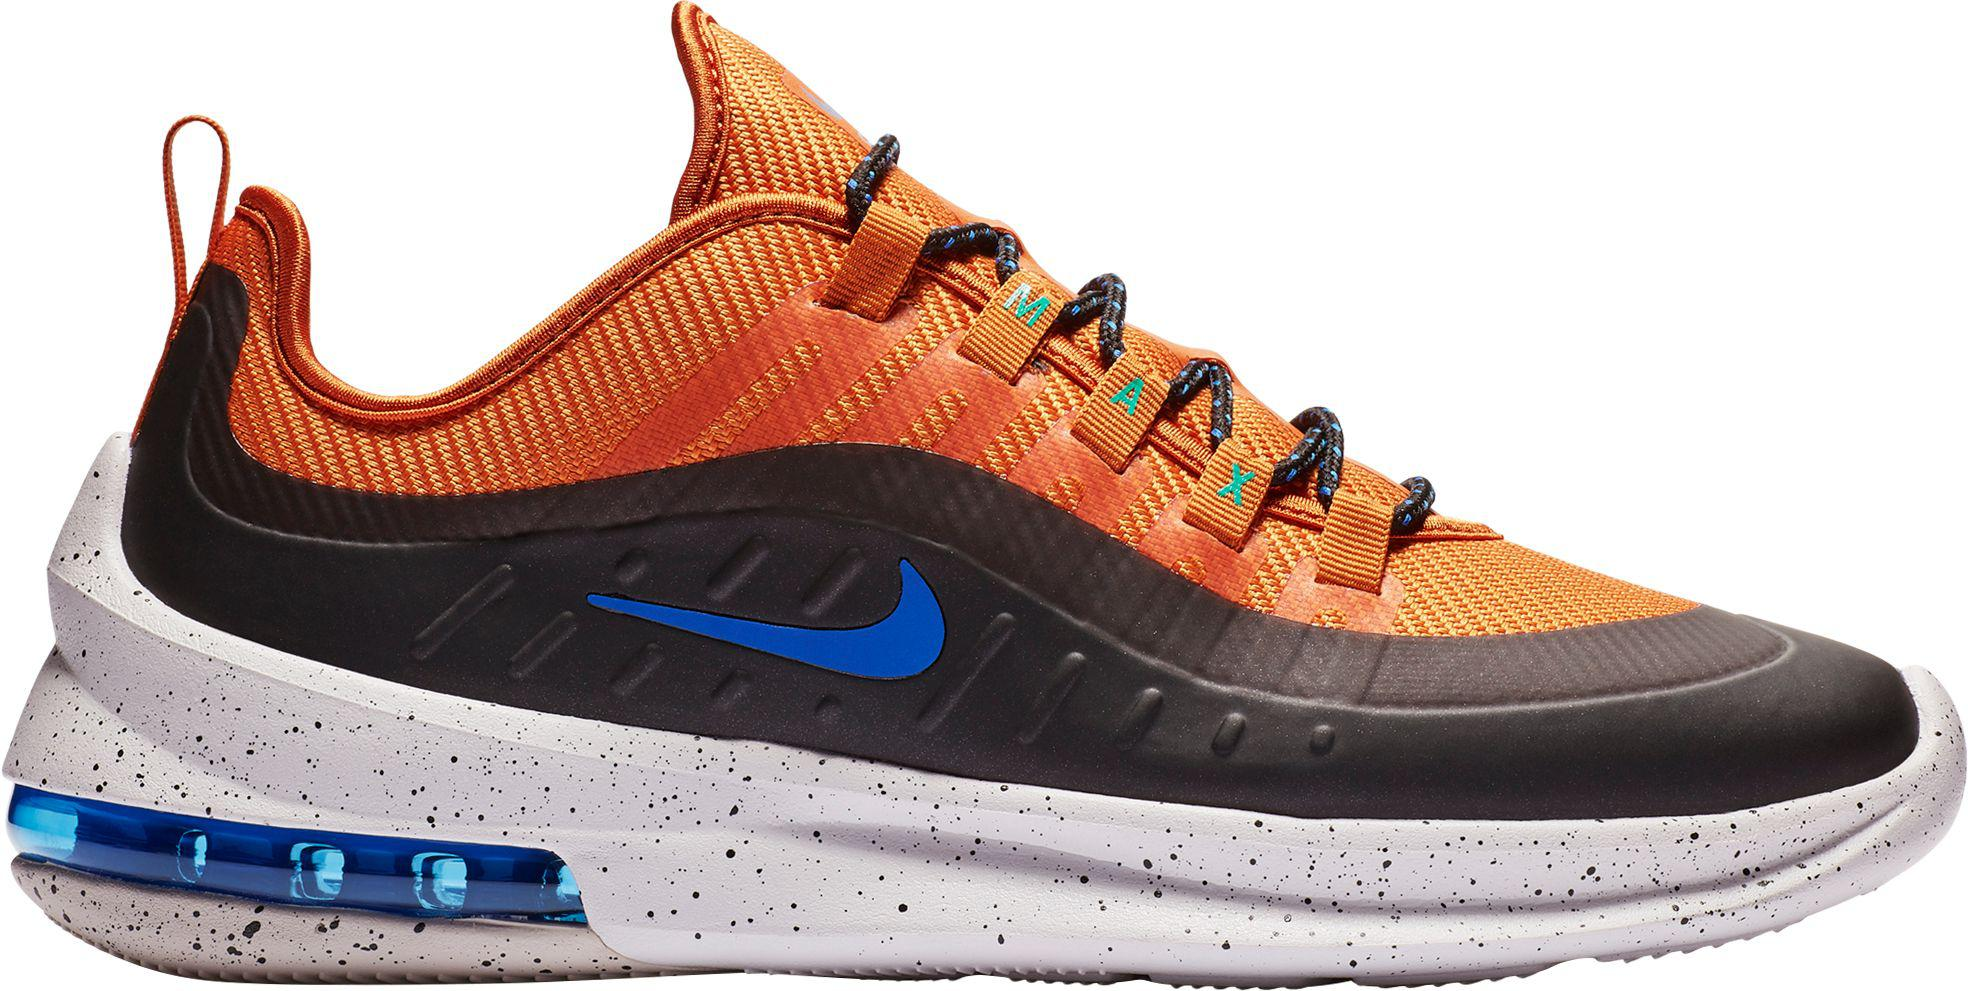 8bace1a6f Nike Air Max Axis Premium Shoes in Orange for Men - Lyst